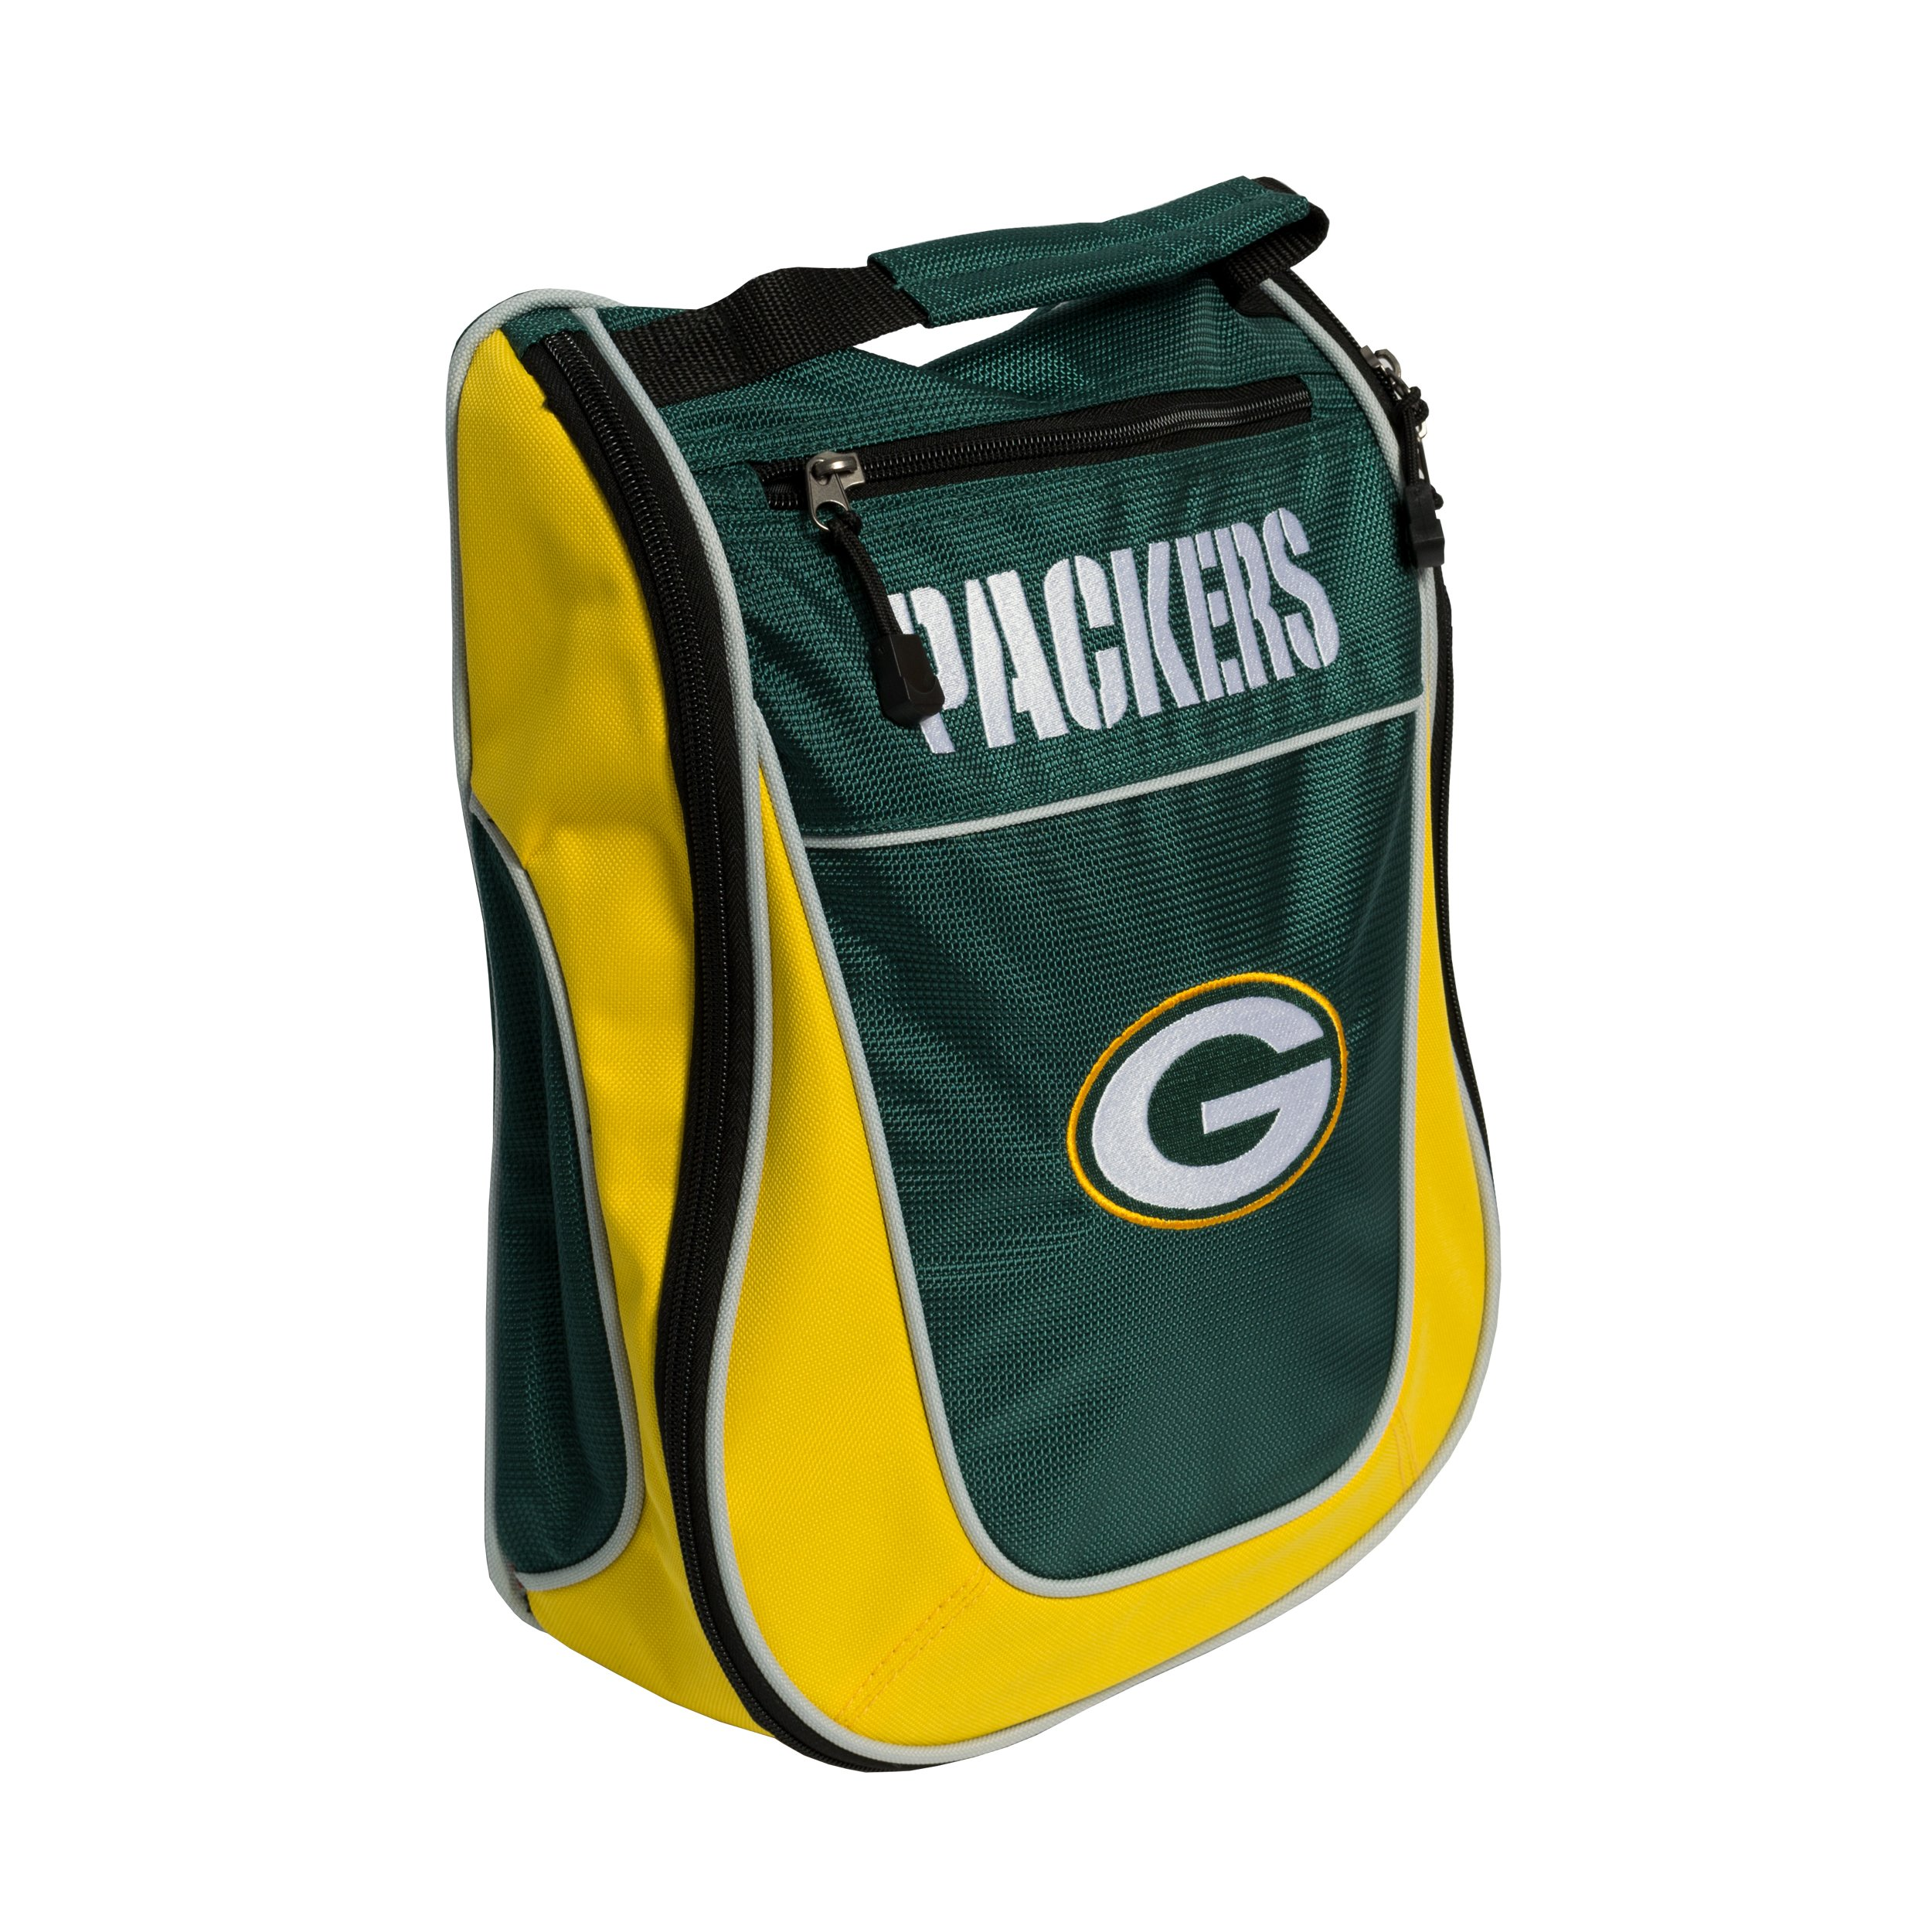 Team Golf NFL Green Bay Packers Travel Golf Shoe Bag, Reduce Smells, Extra Pocket for Storage, Carry Handle by Team Golf